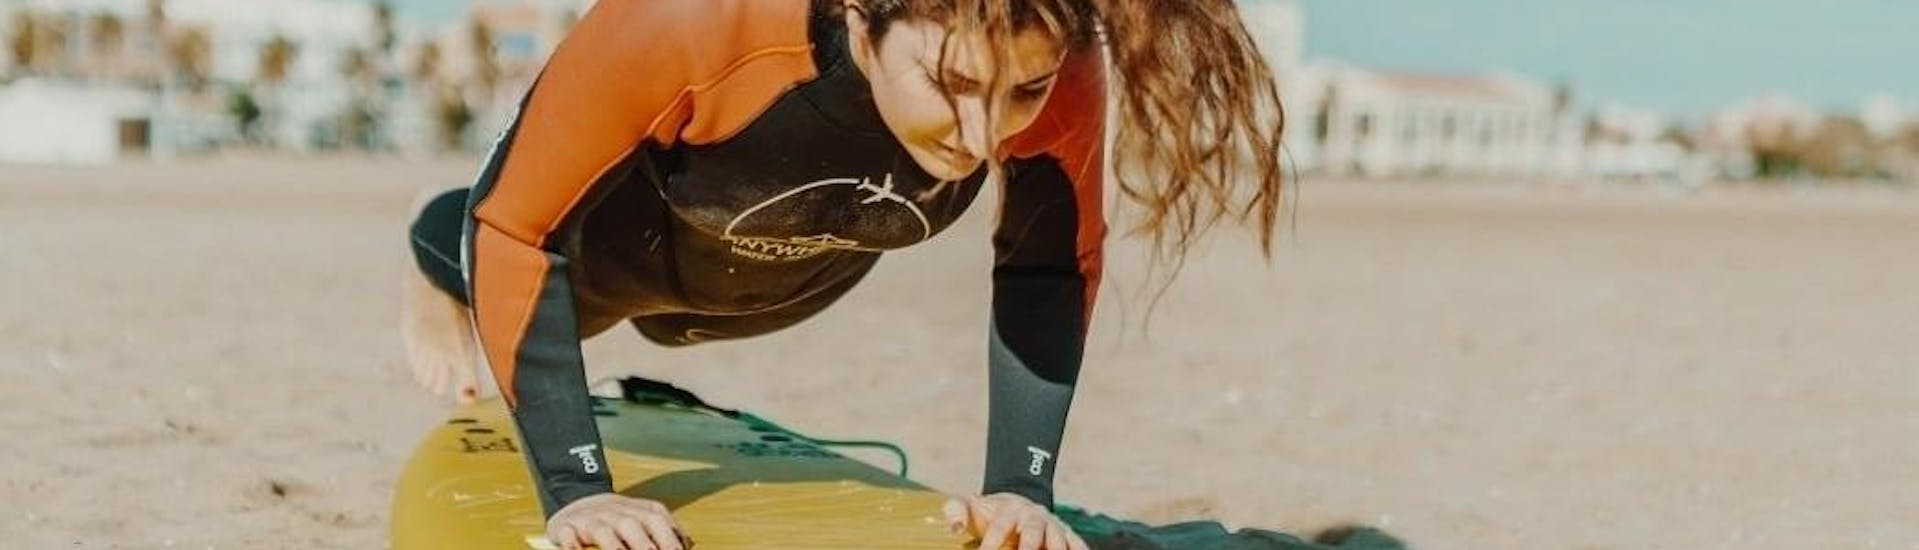 Private surfing lessons in Valencia with Anywhere Watersports.